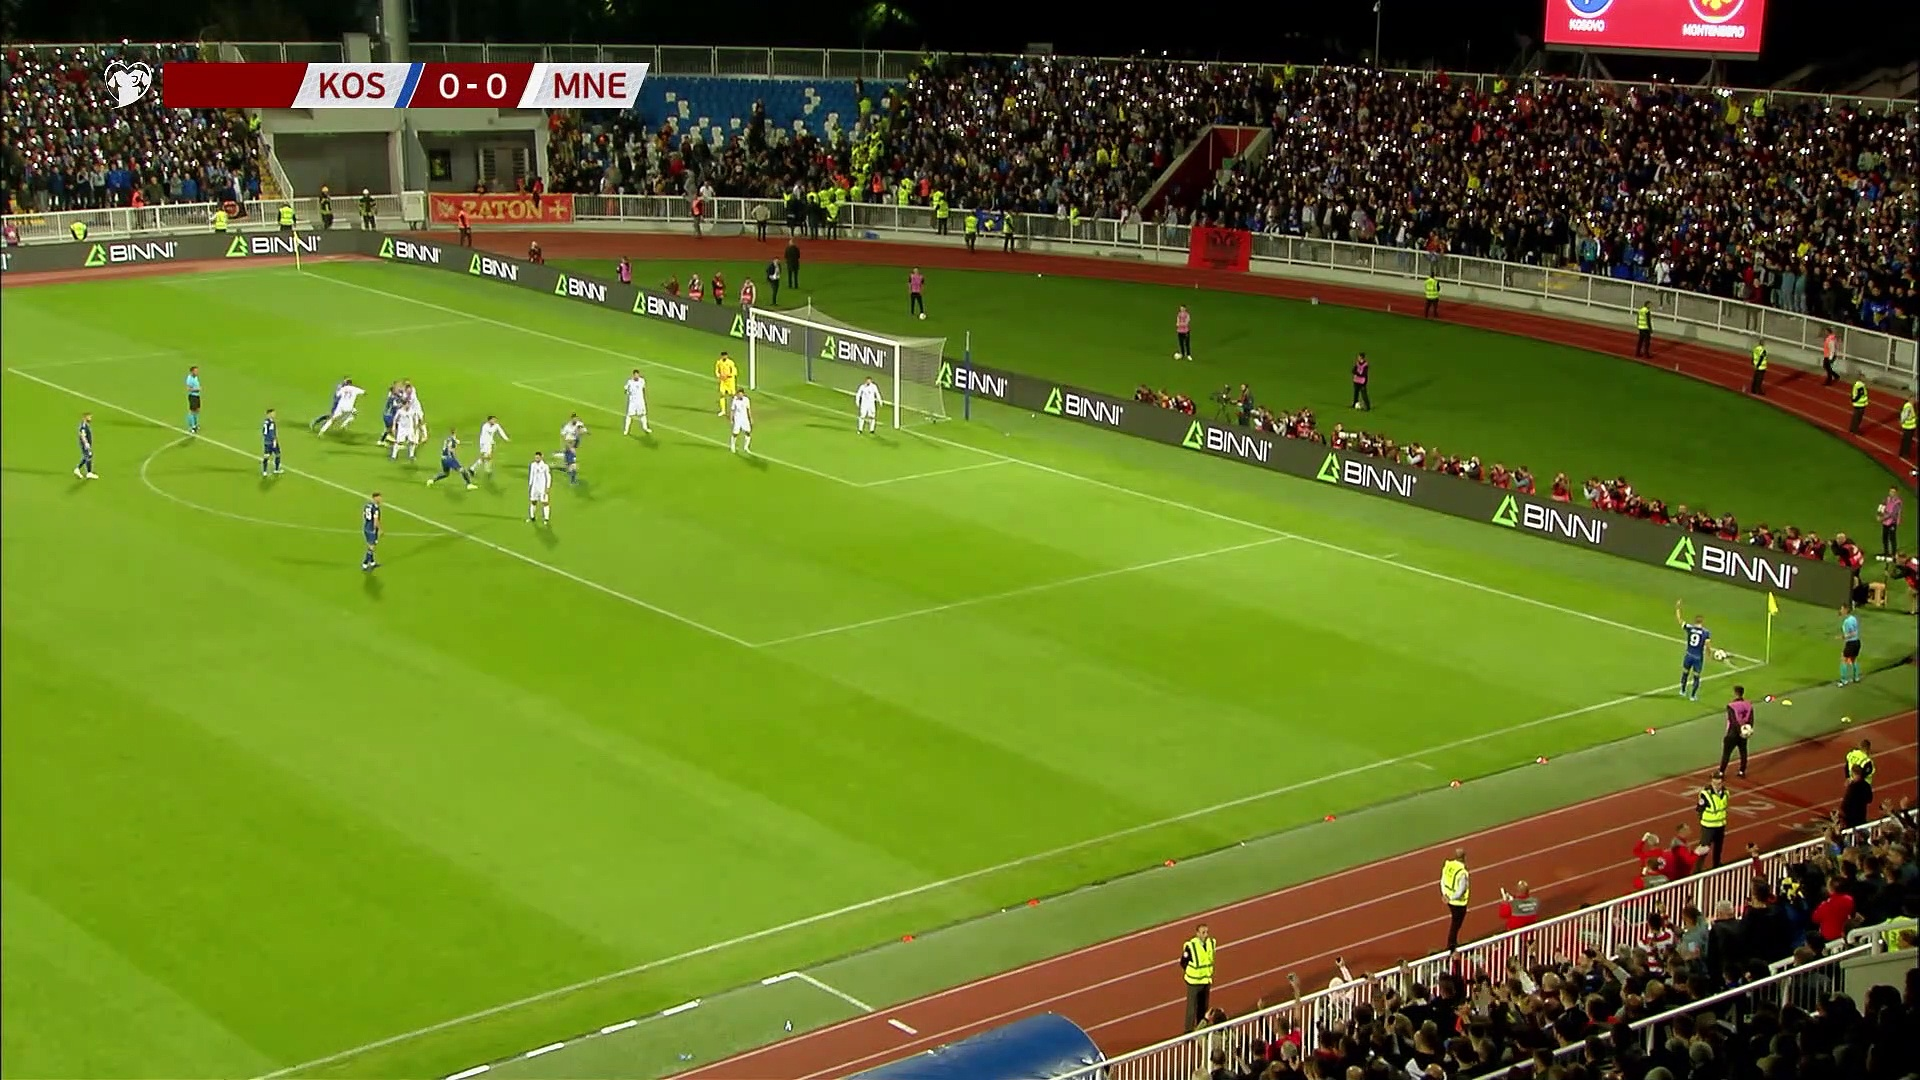 7. Hafta / Kosova - Karadağ: 2-0 (Özet)